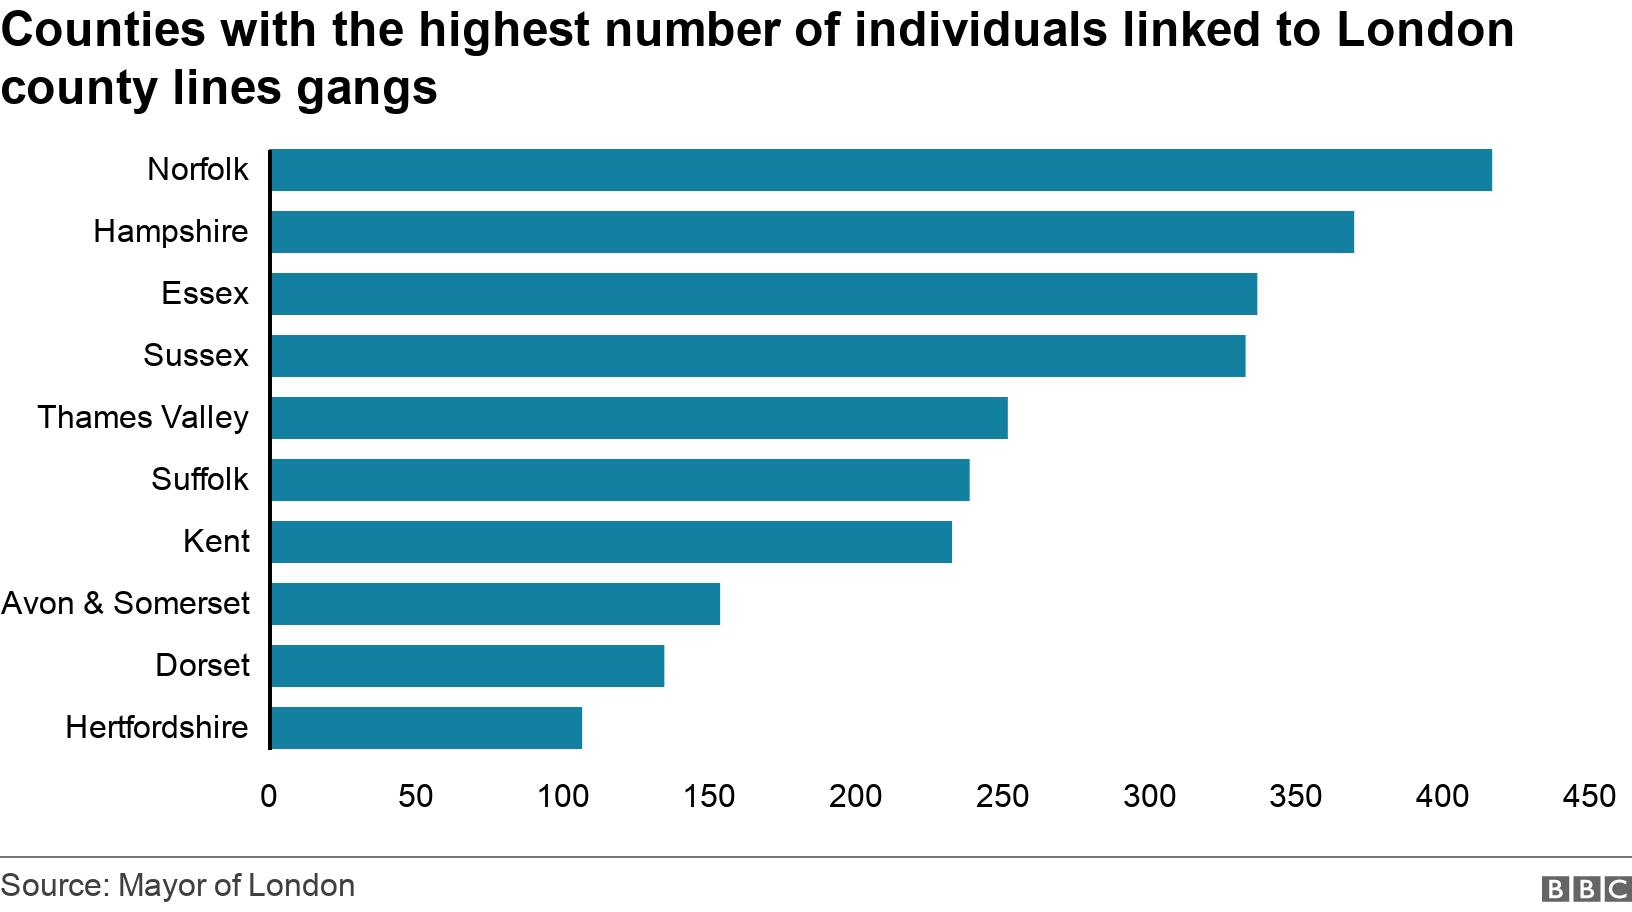 Counties with the  highest number of individuals linked to  London county lines gangs. . Norfolk 	416 Hampshire 	369 Essex 	336 Sussex	332 Lambeth 	271 Thames Valley 	251 Suffolk 	238 Kent 	232 Avon & Somerset 	153 Dorset 	134 Hertfordshire	106 .